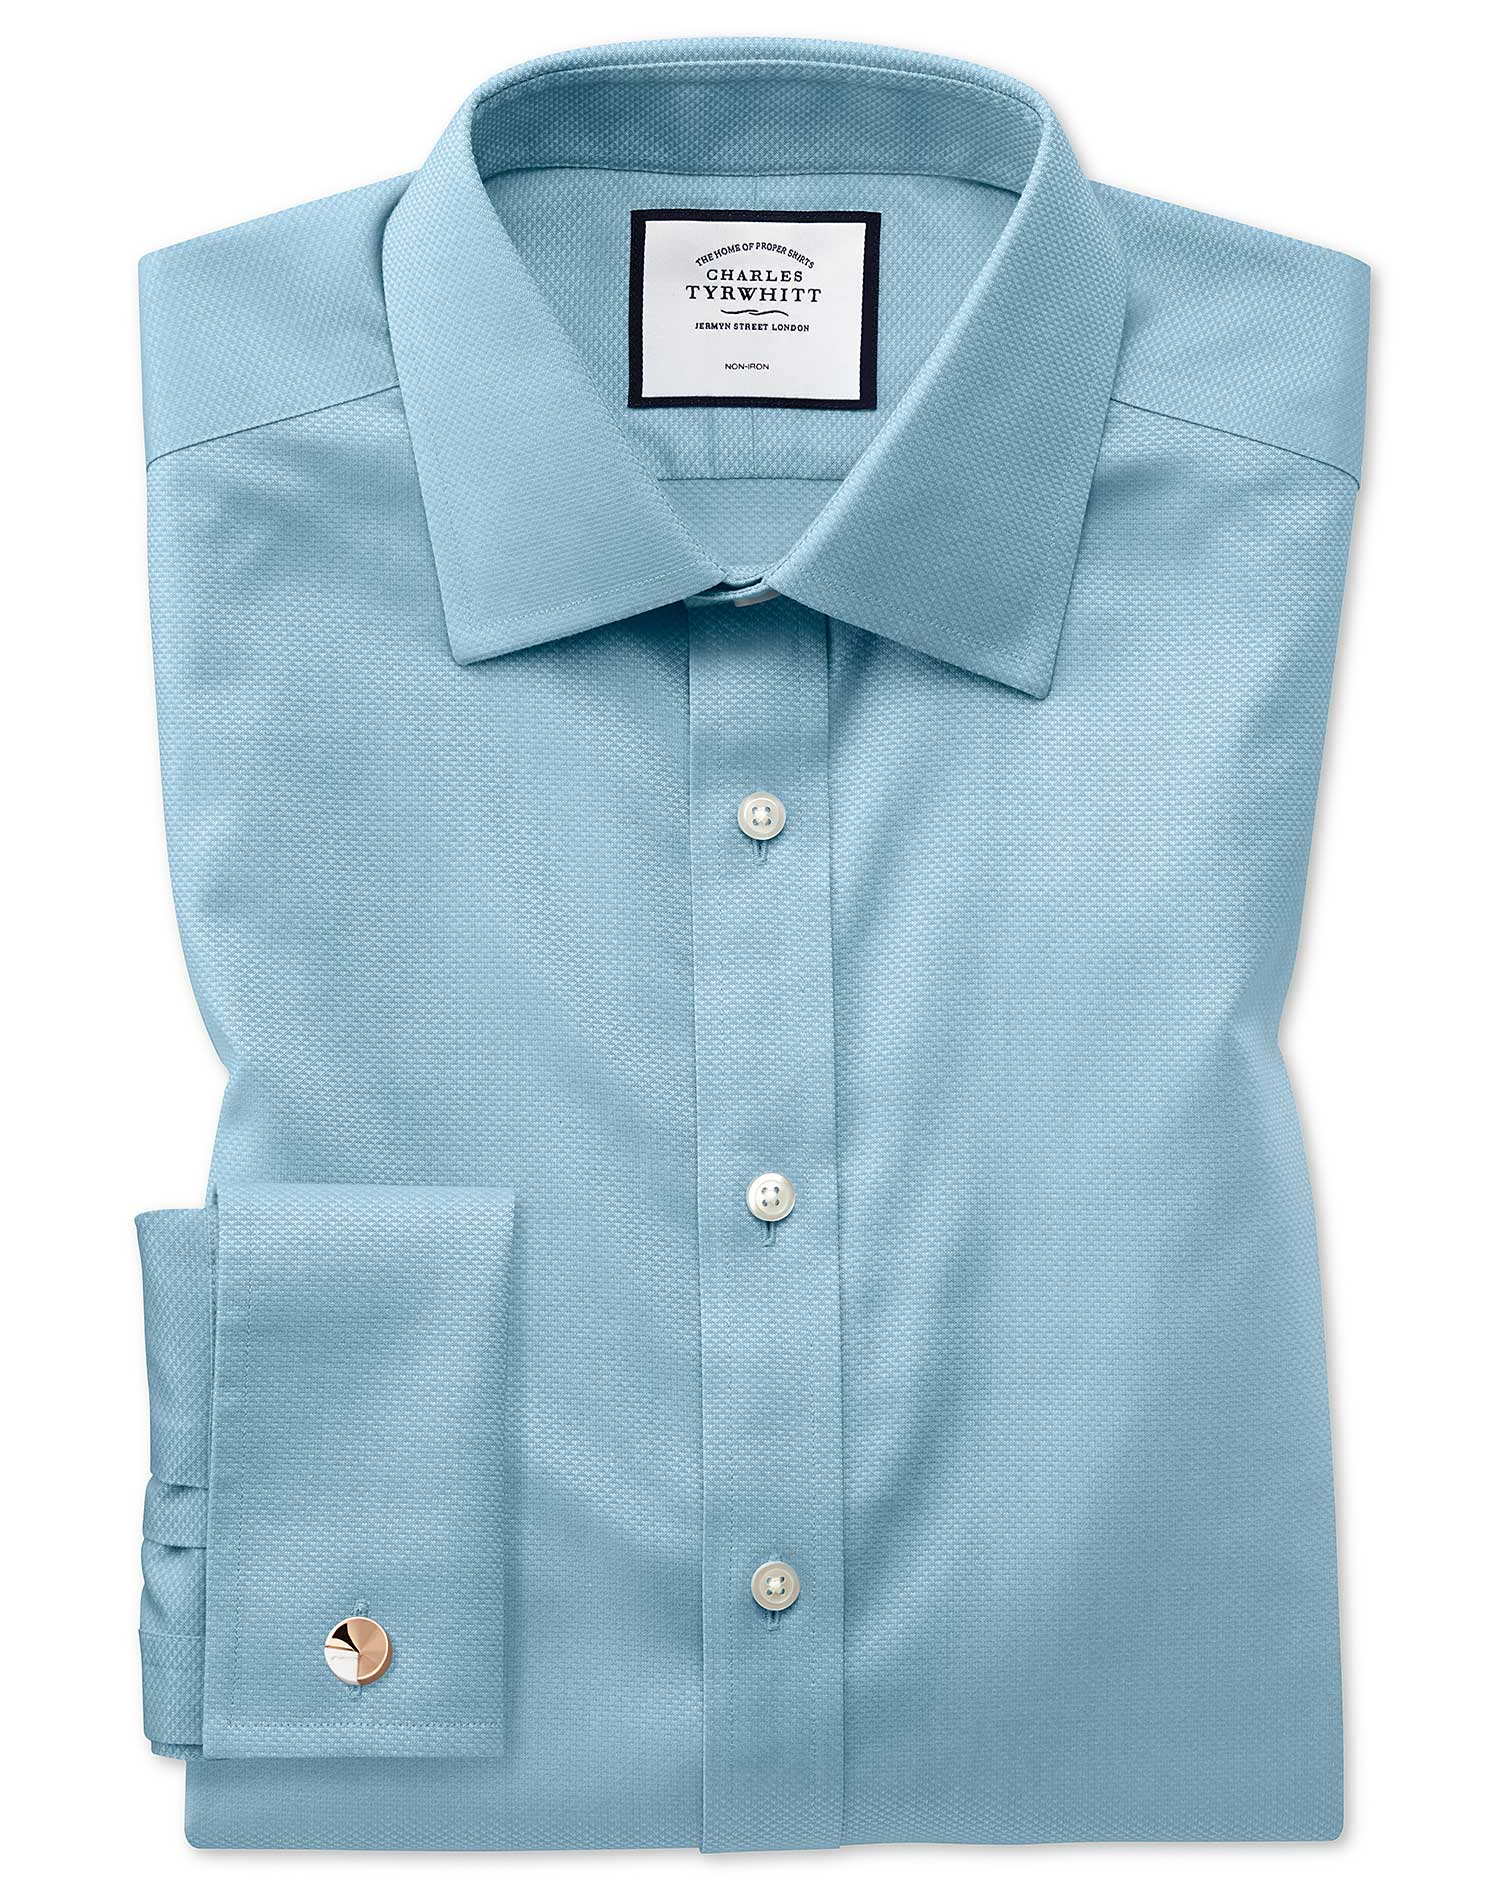 Slim Fit Non-Iron Teal Triangle Weave Cotton Formal Shirt Single Cuff Size 15.5/37 by Charles Tyrwhi